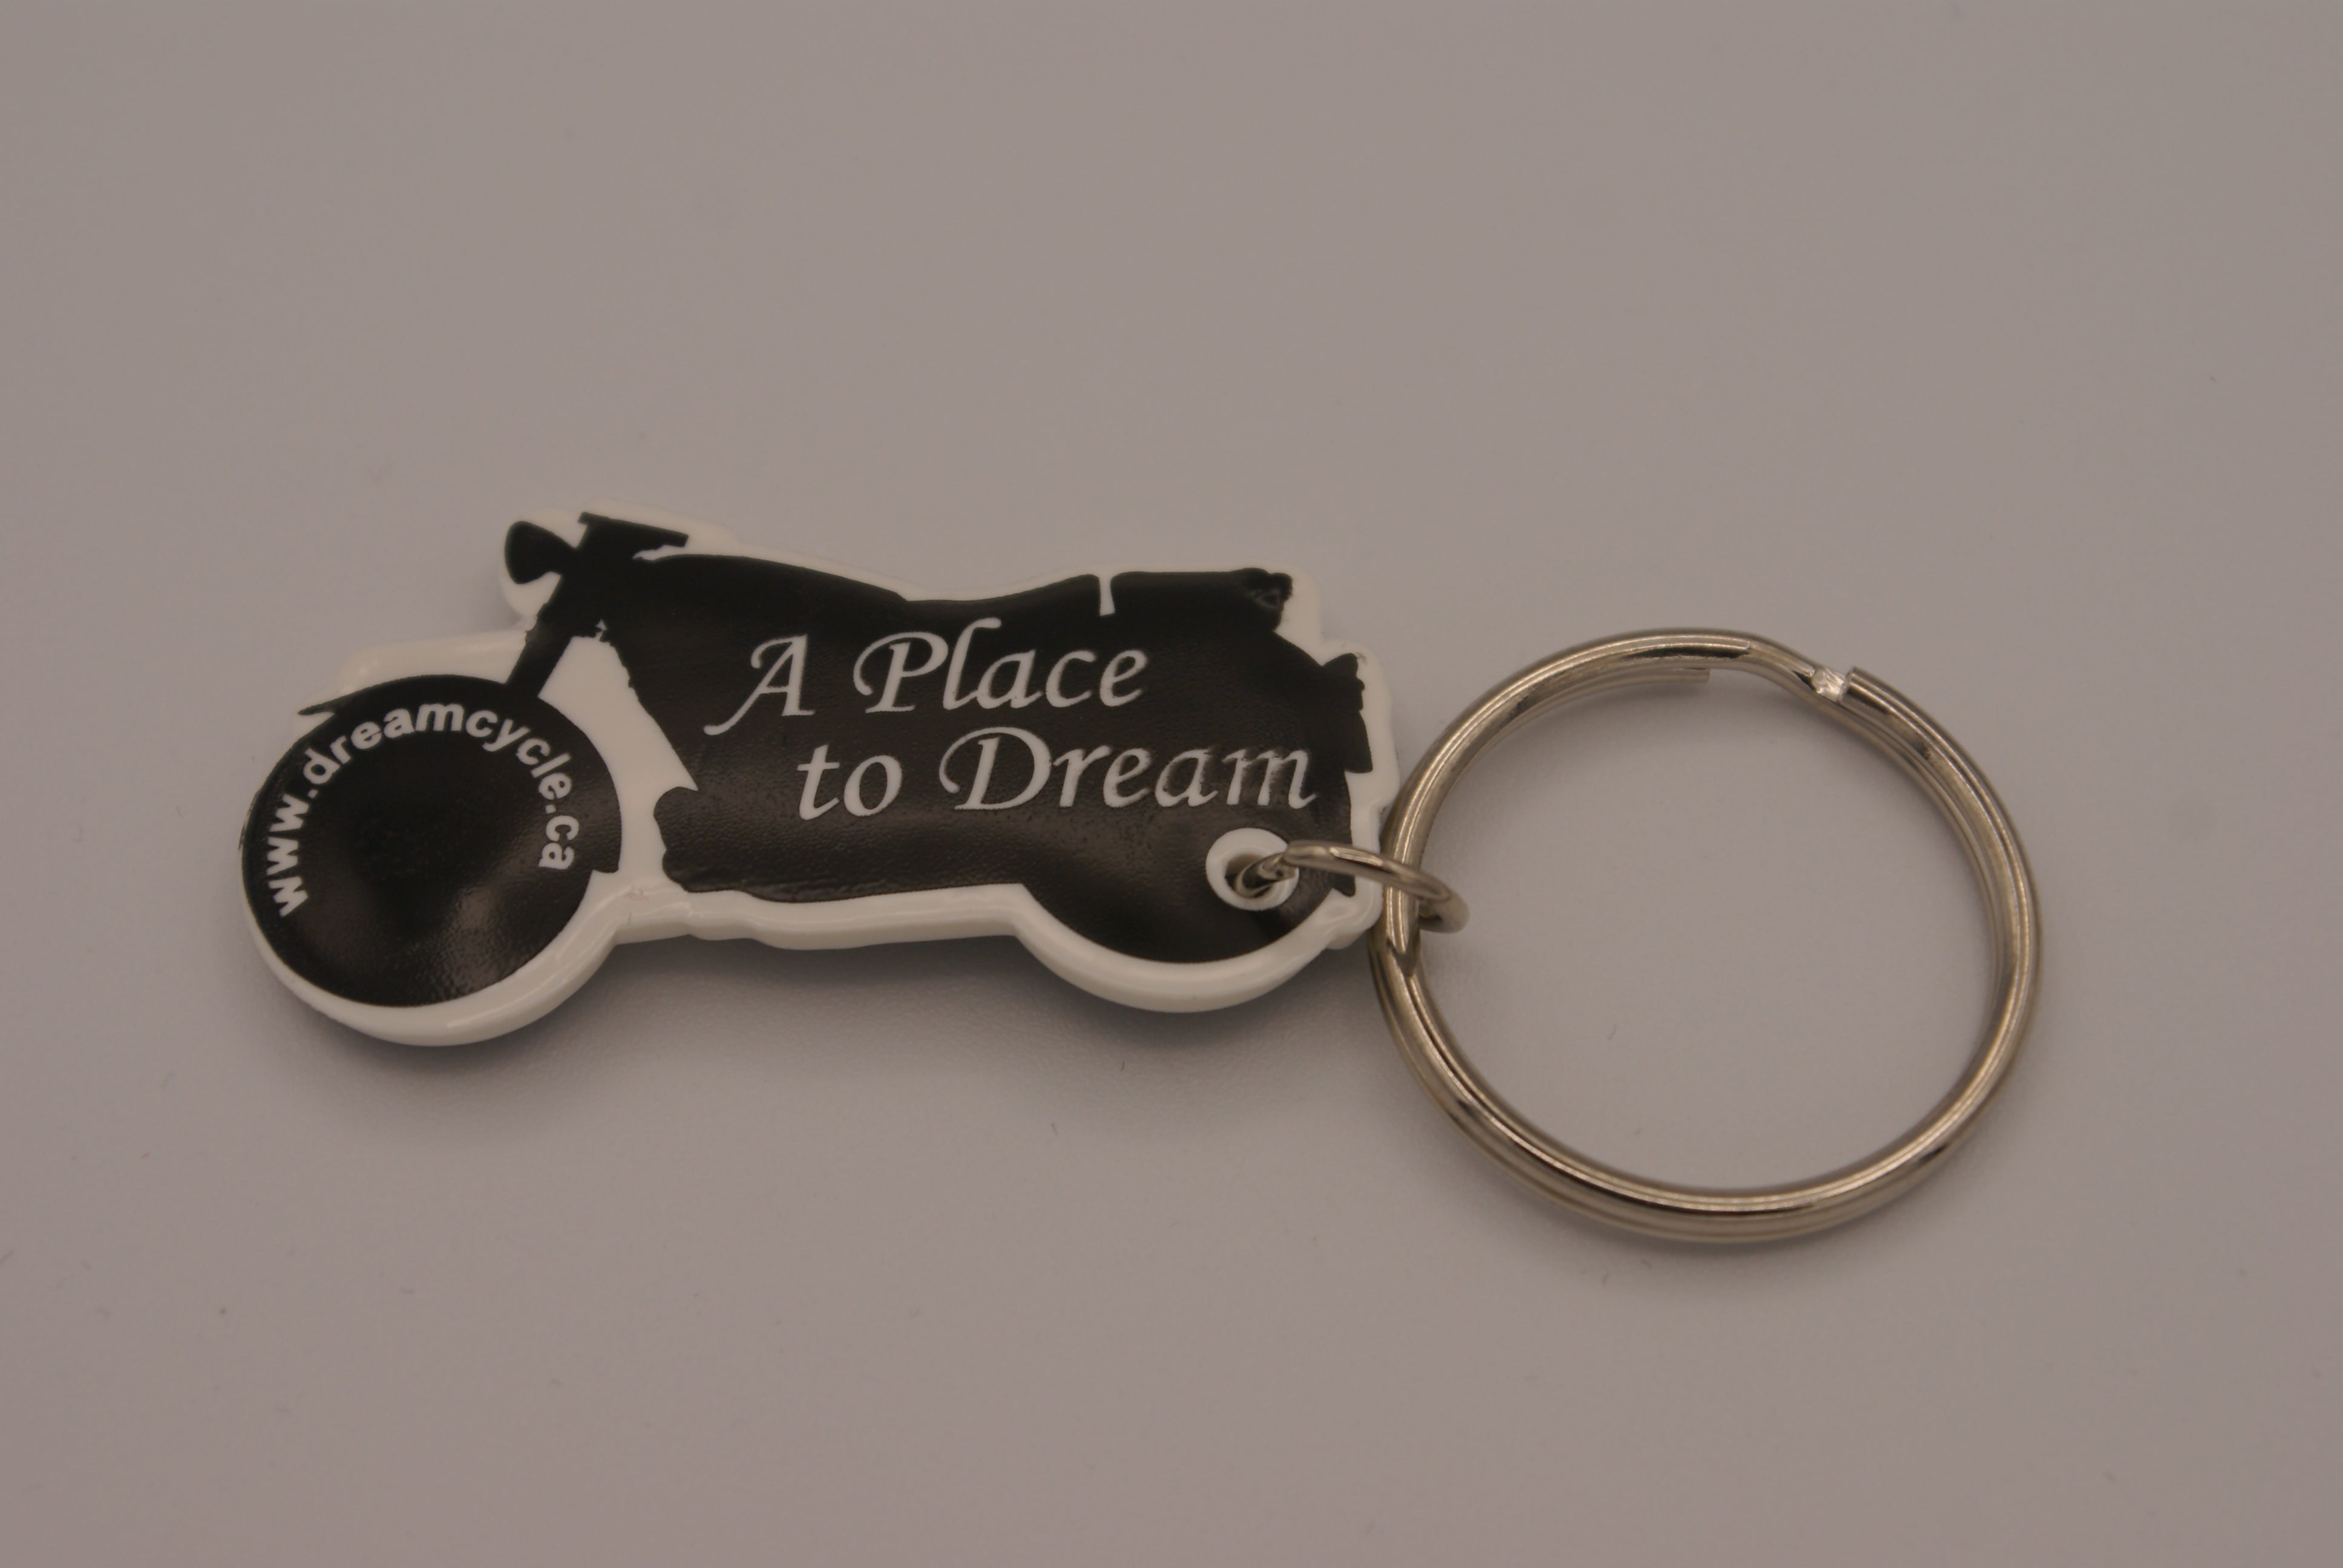 Dreamcycle Key Chain